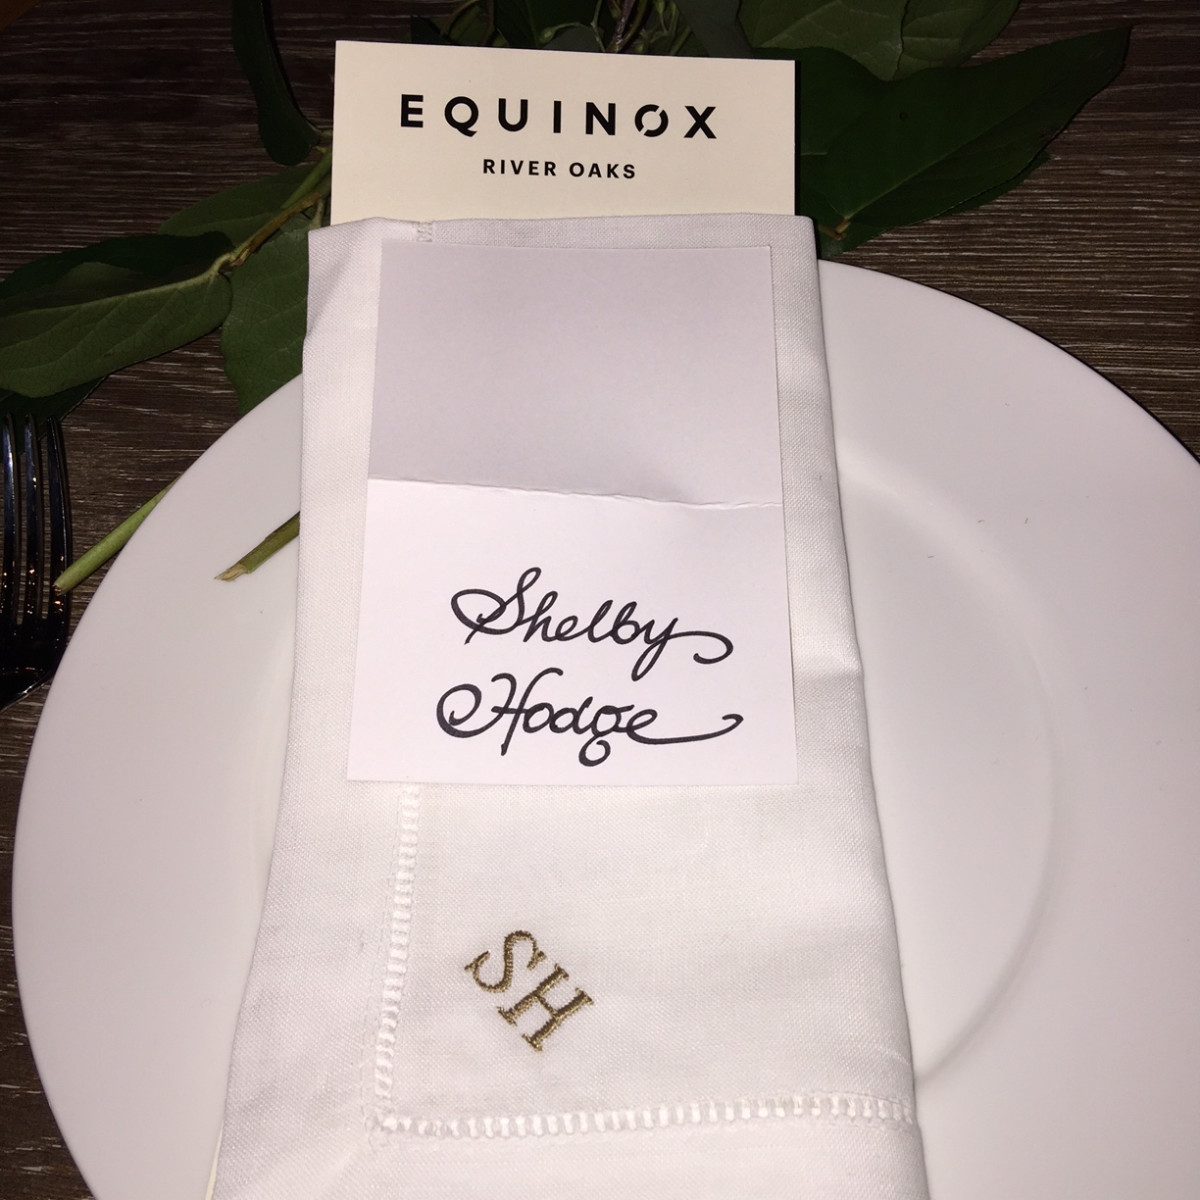 News, Equinox Opening Dinner, Dec. 2015, monogramed napkins